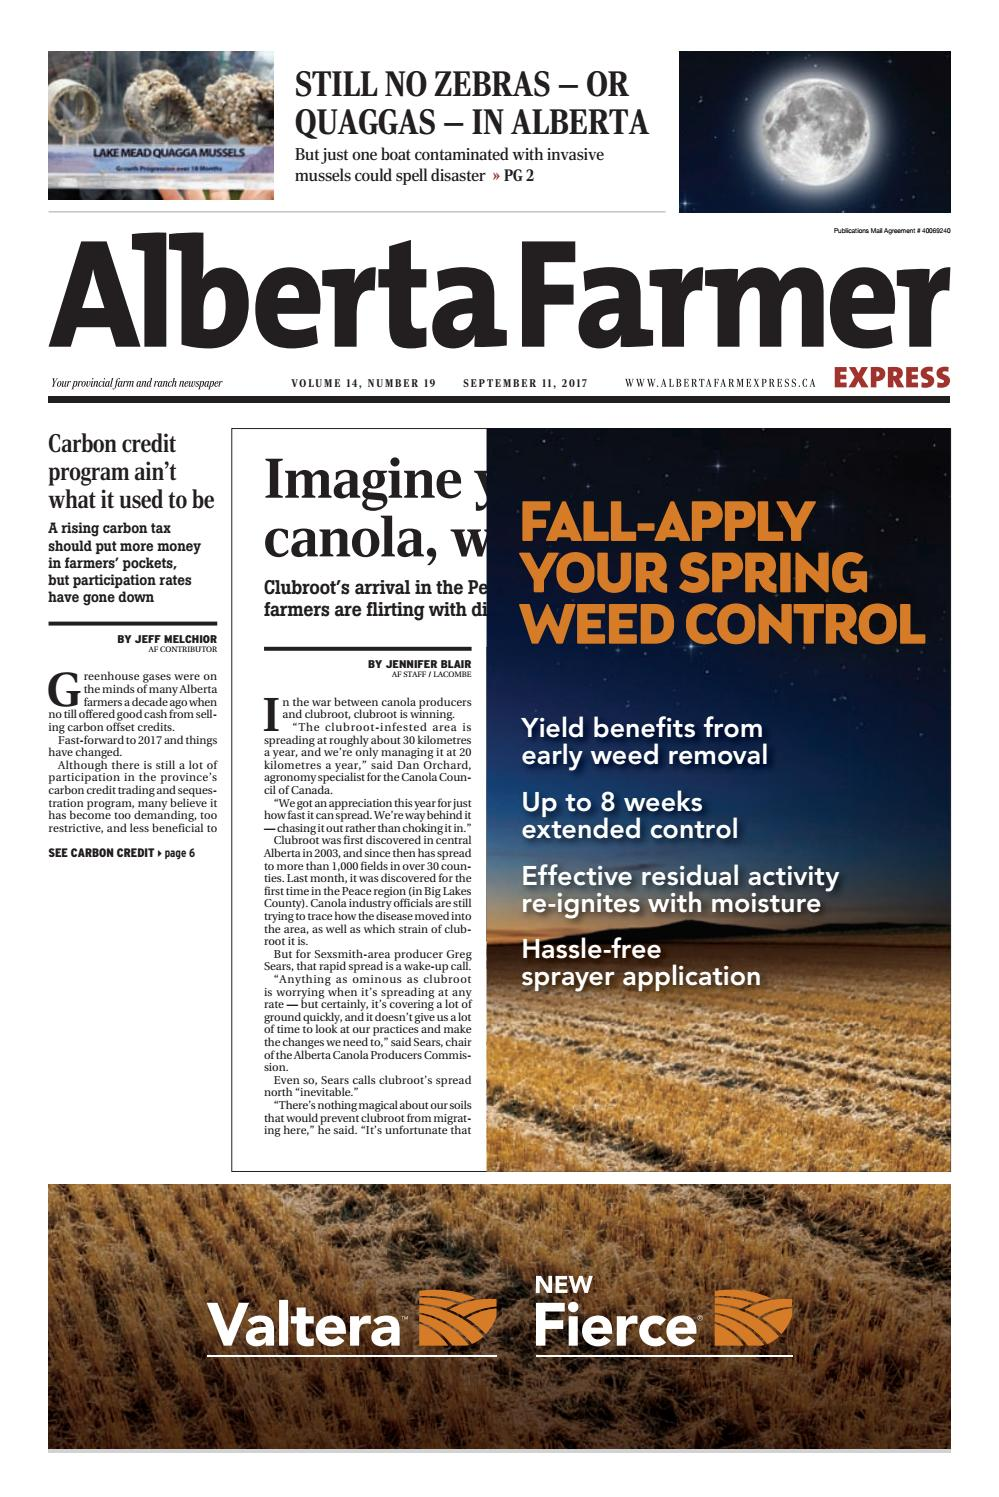 Alberta Farm Express By Business Communications Issuu Fuse Box On Heavytruckparts